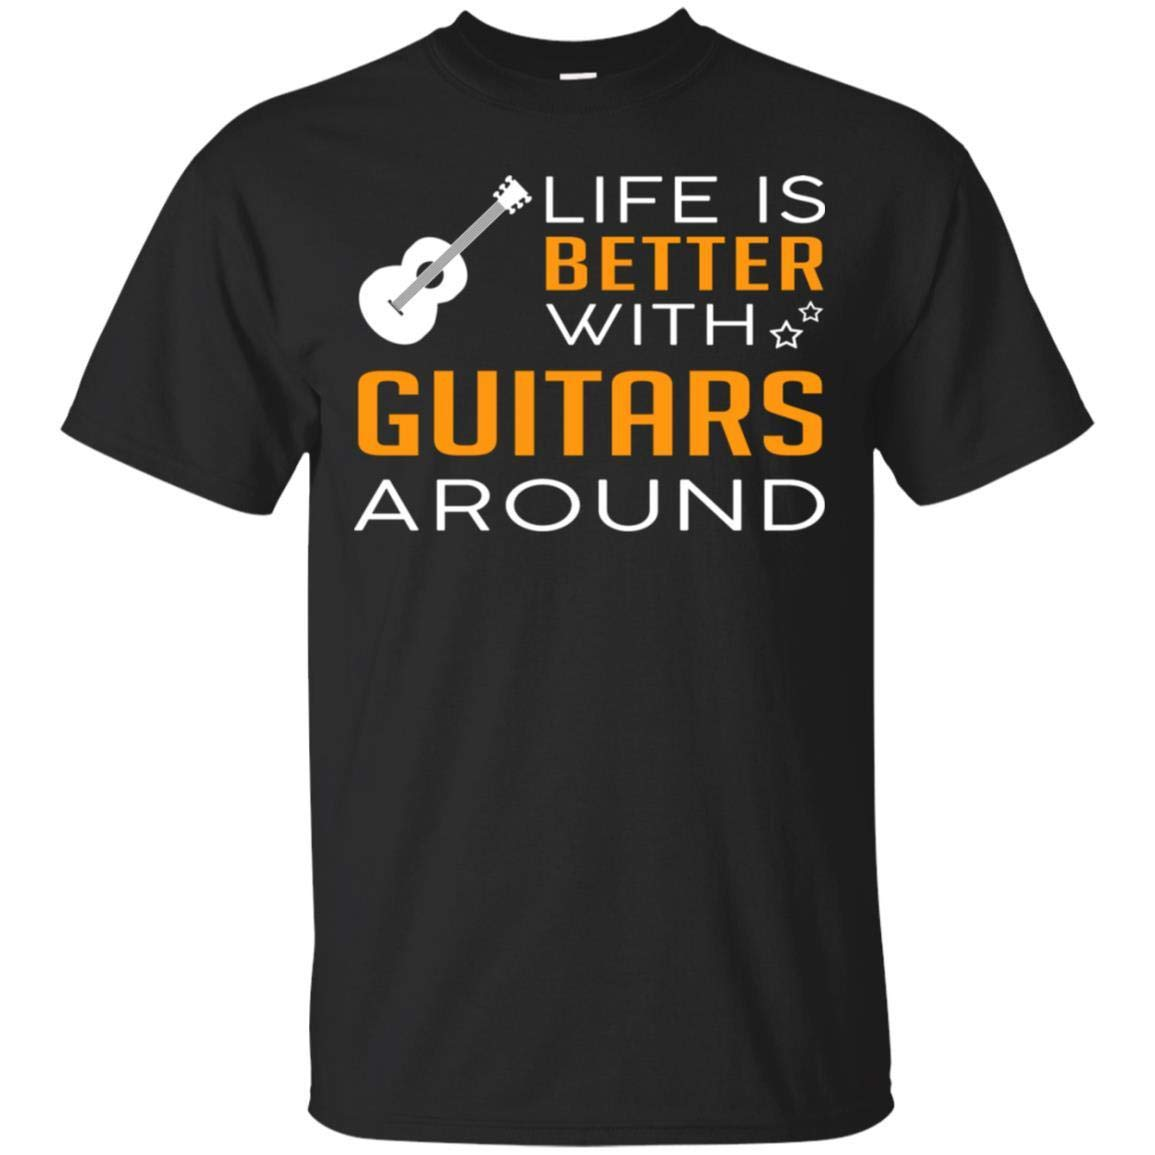 Life is Better with Guitars Around Funny Lover Gift Idea Shirt - Unisex Tshirt Black by Funny Quotes Gift Apperal